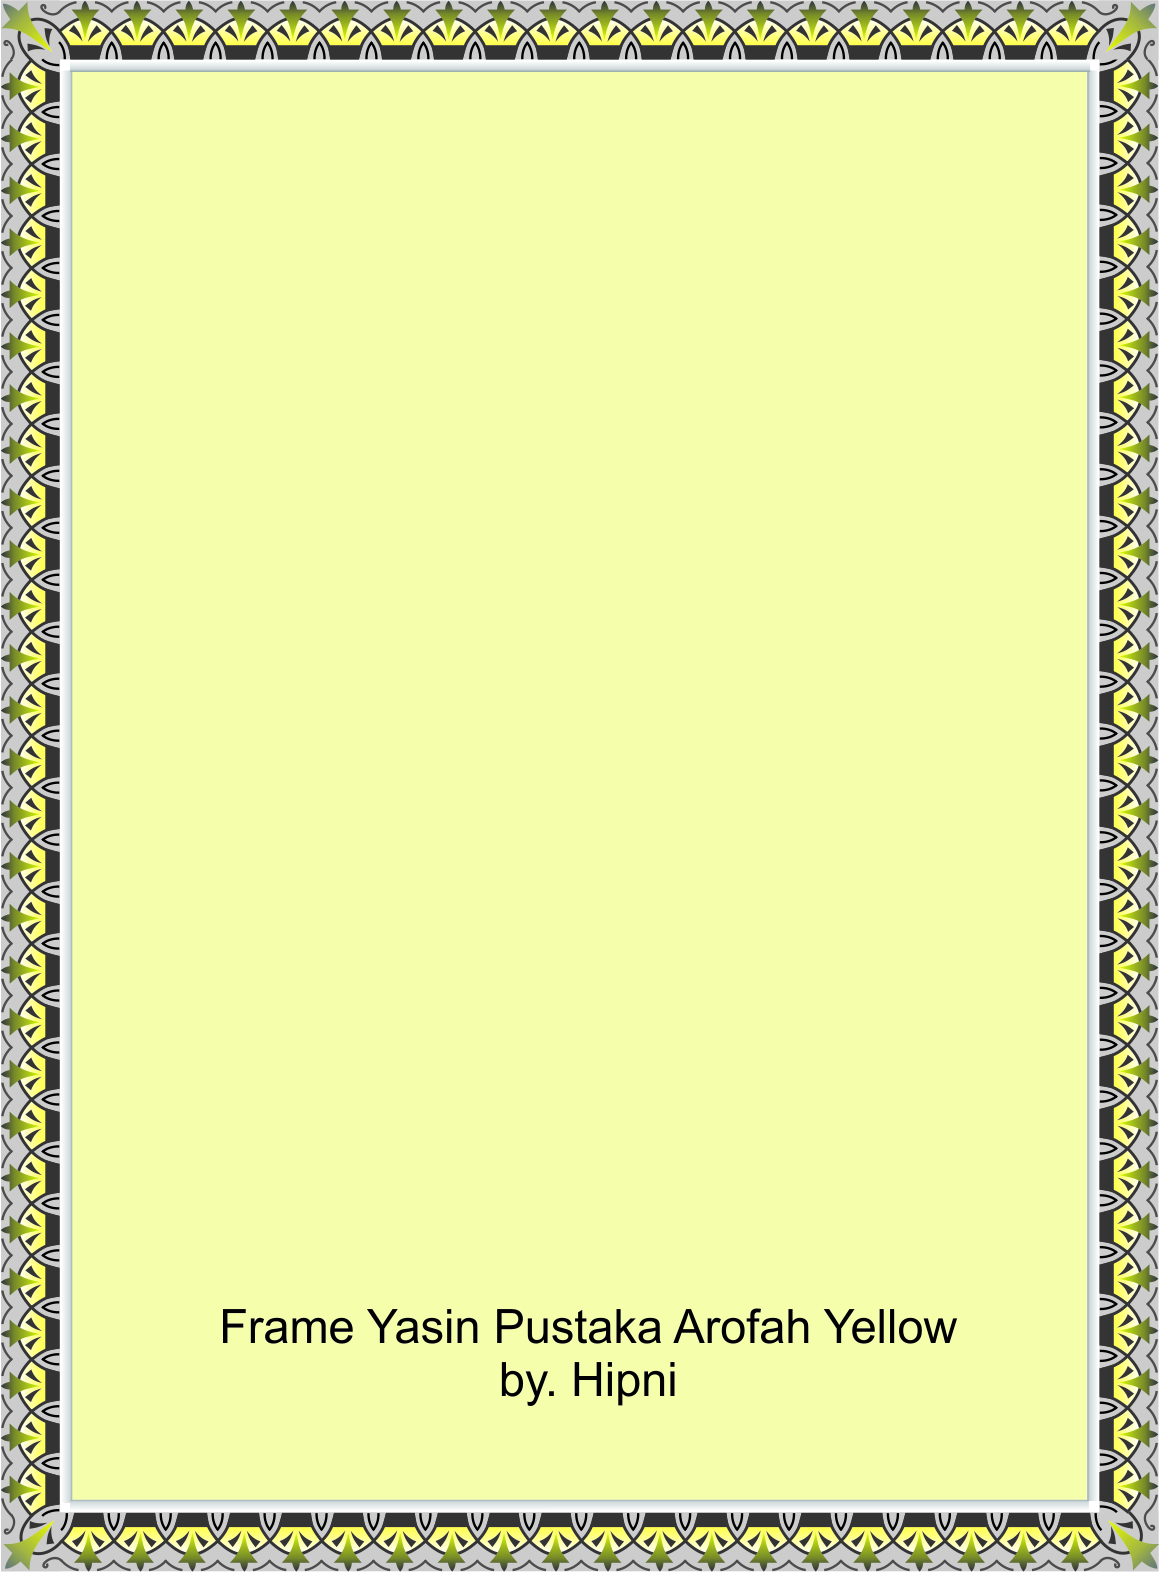 Download Cover Yasin Format Coreldraw : download, cover, yasin, format, coreldraw, Bingkai, Yasin, Tuntas